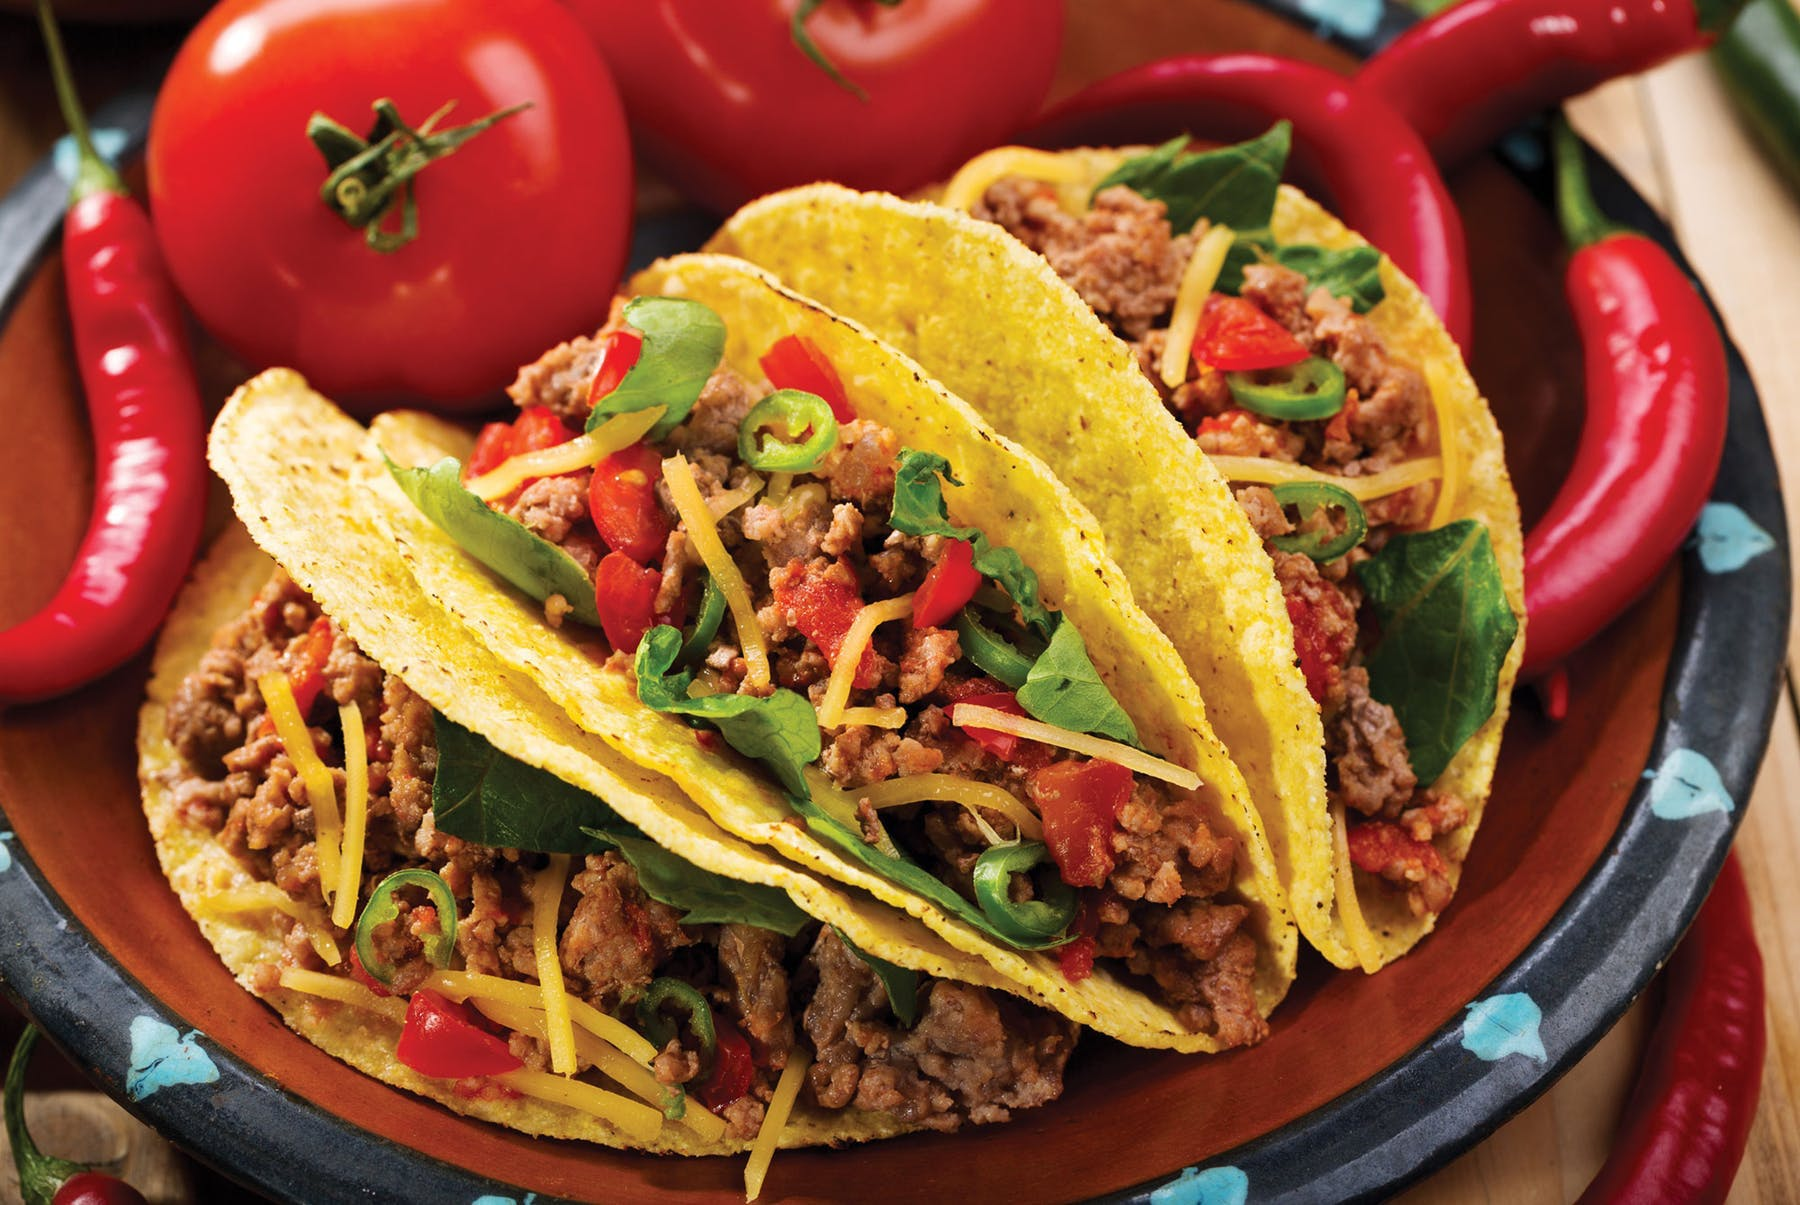 a close up of three tacos on a plate